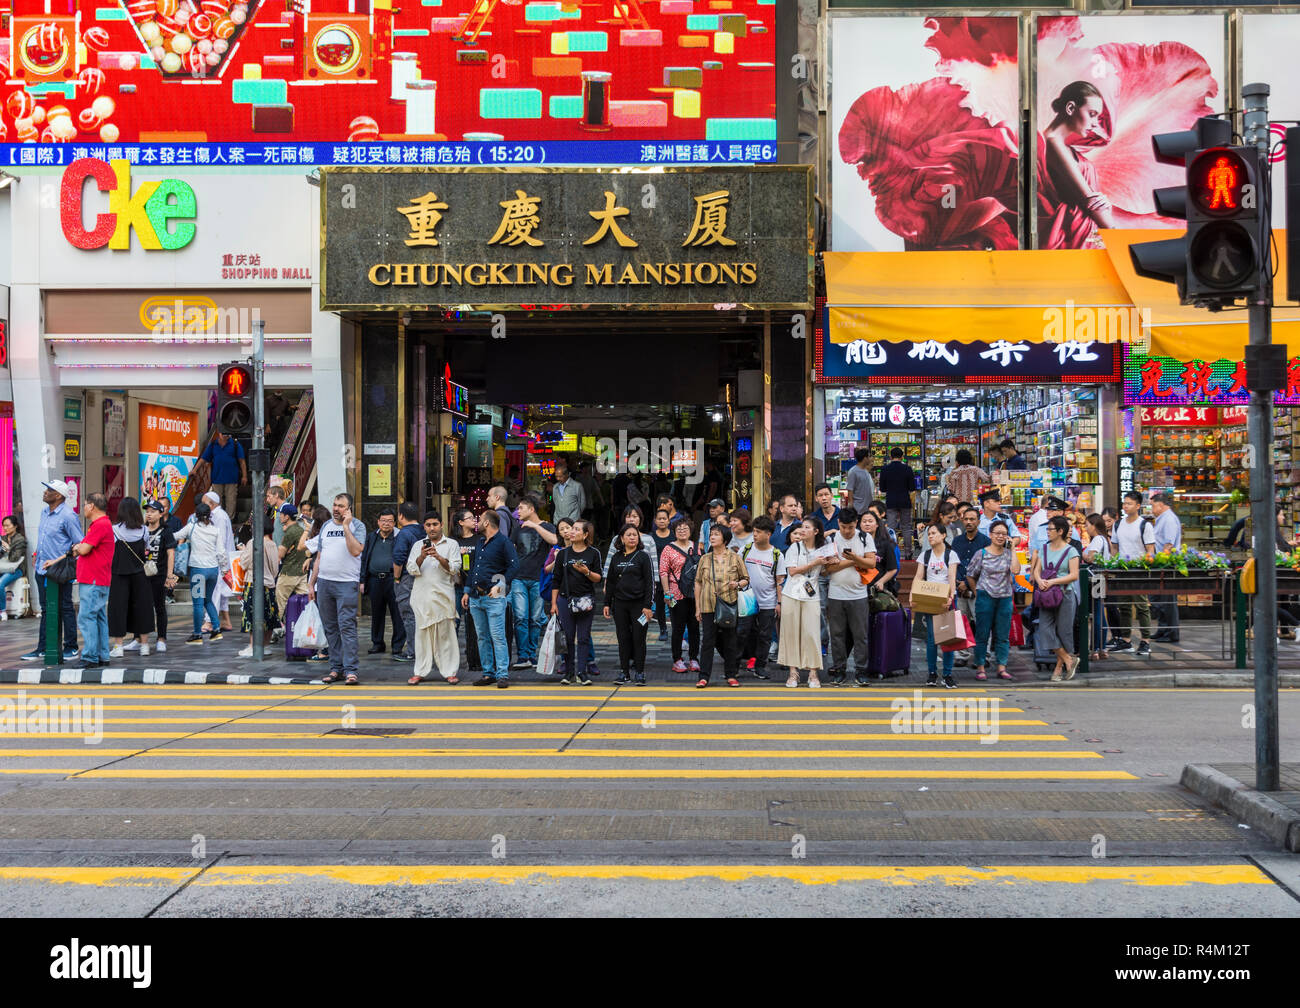 People waiting at the crosswalk outside Chungking Mansions, Nathan Road, Tsim Sha Tsui, Kowloon, Hong Kong - Stock Image